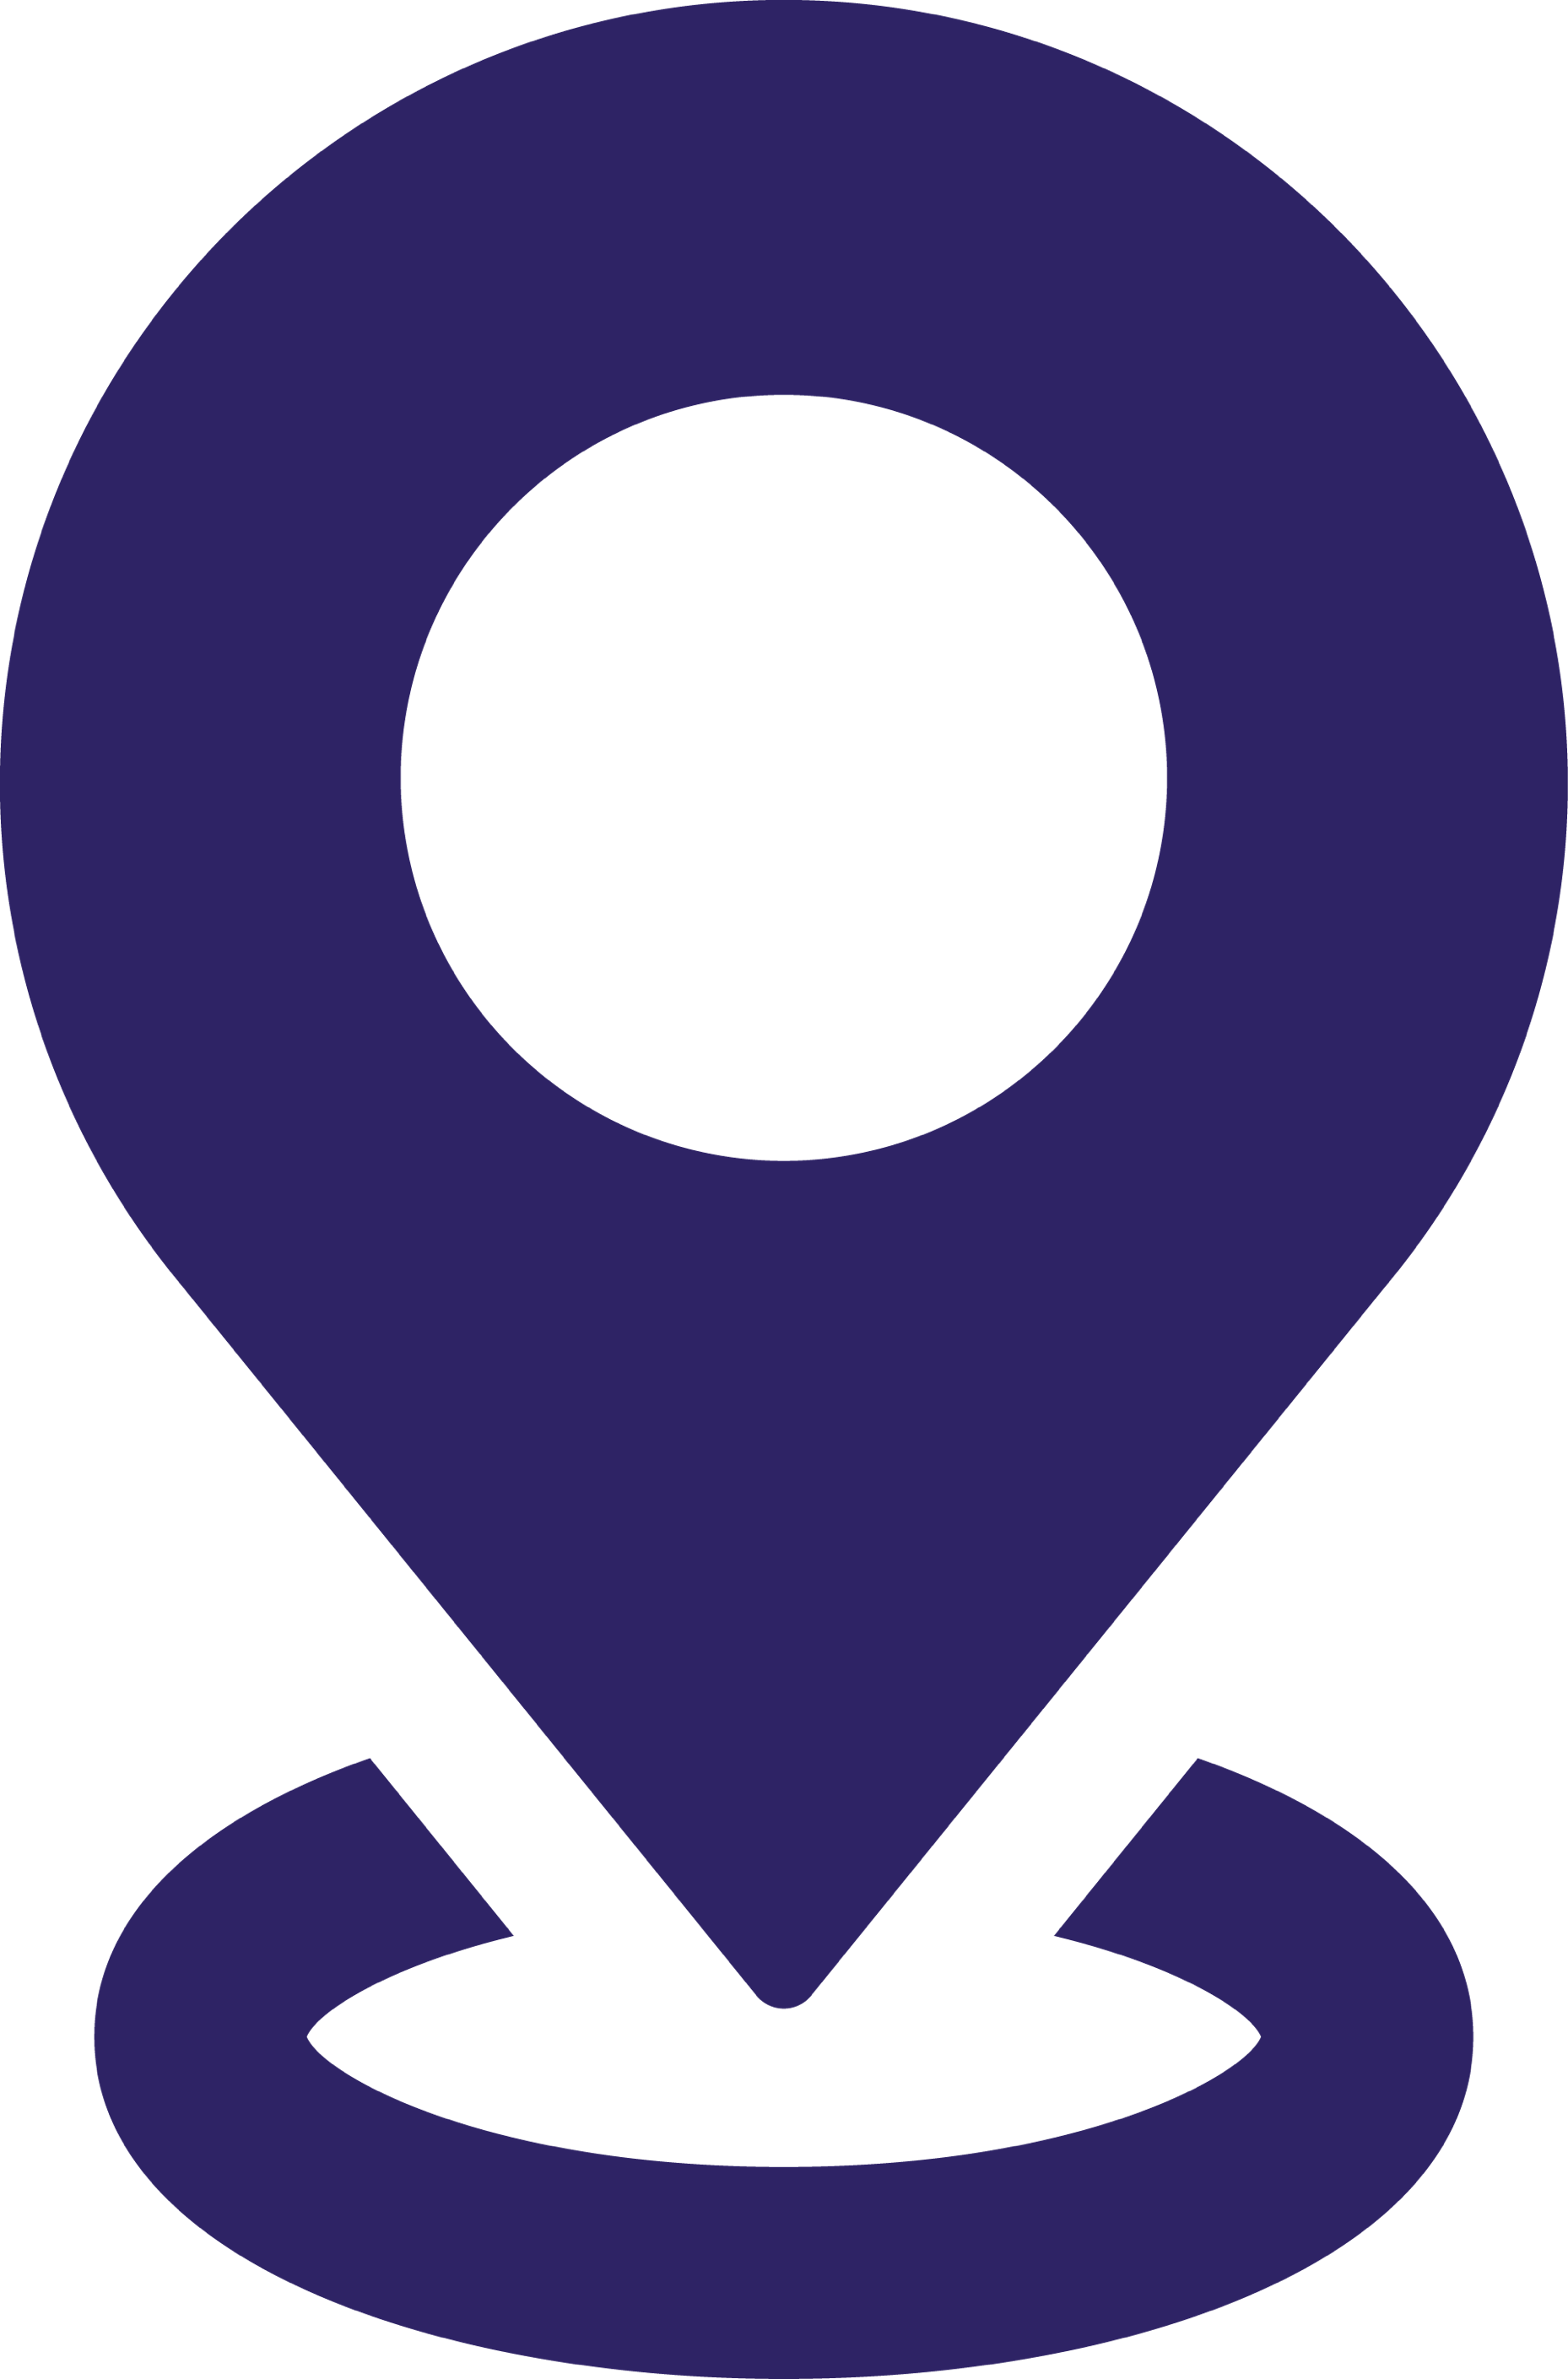 Co op network valley. Location clipart symbol small